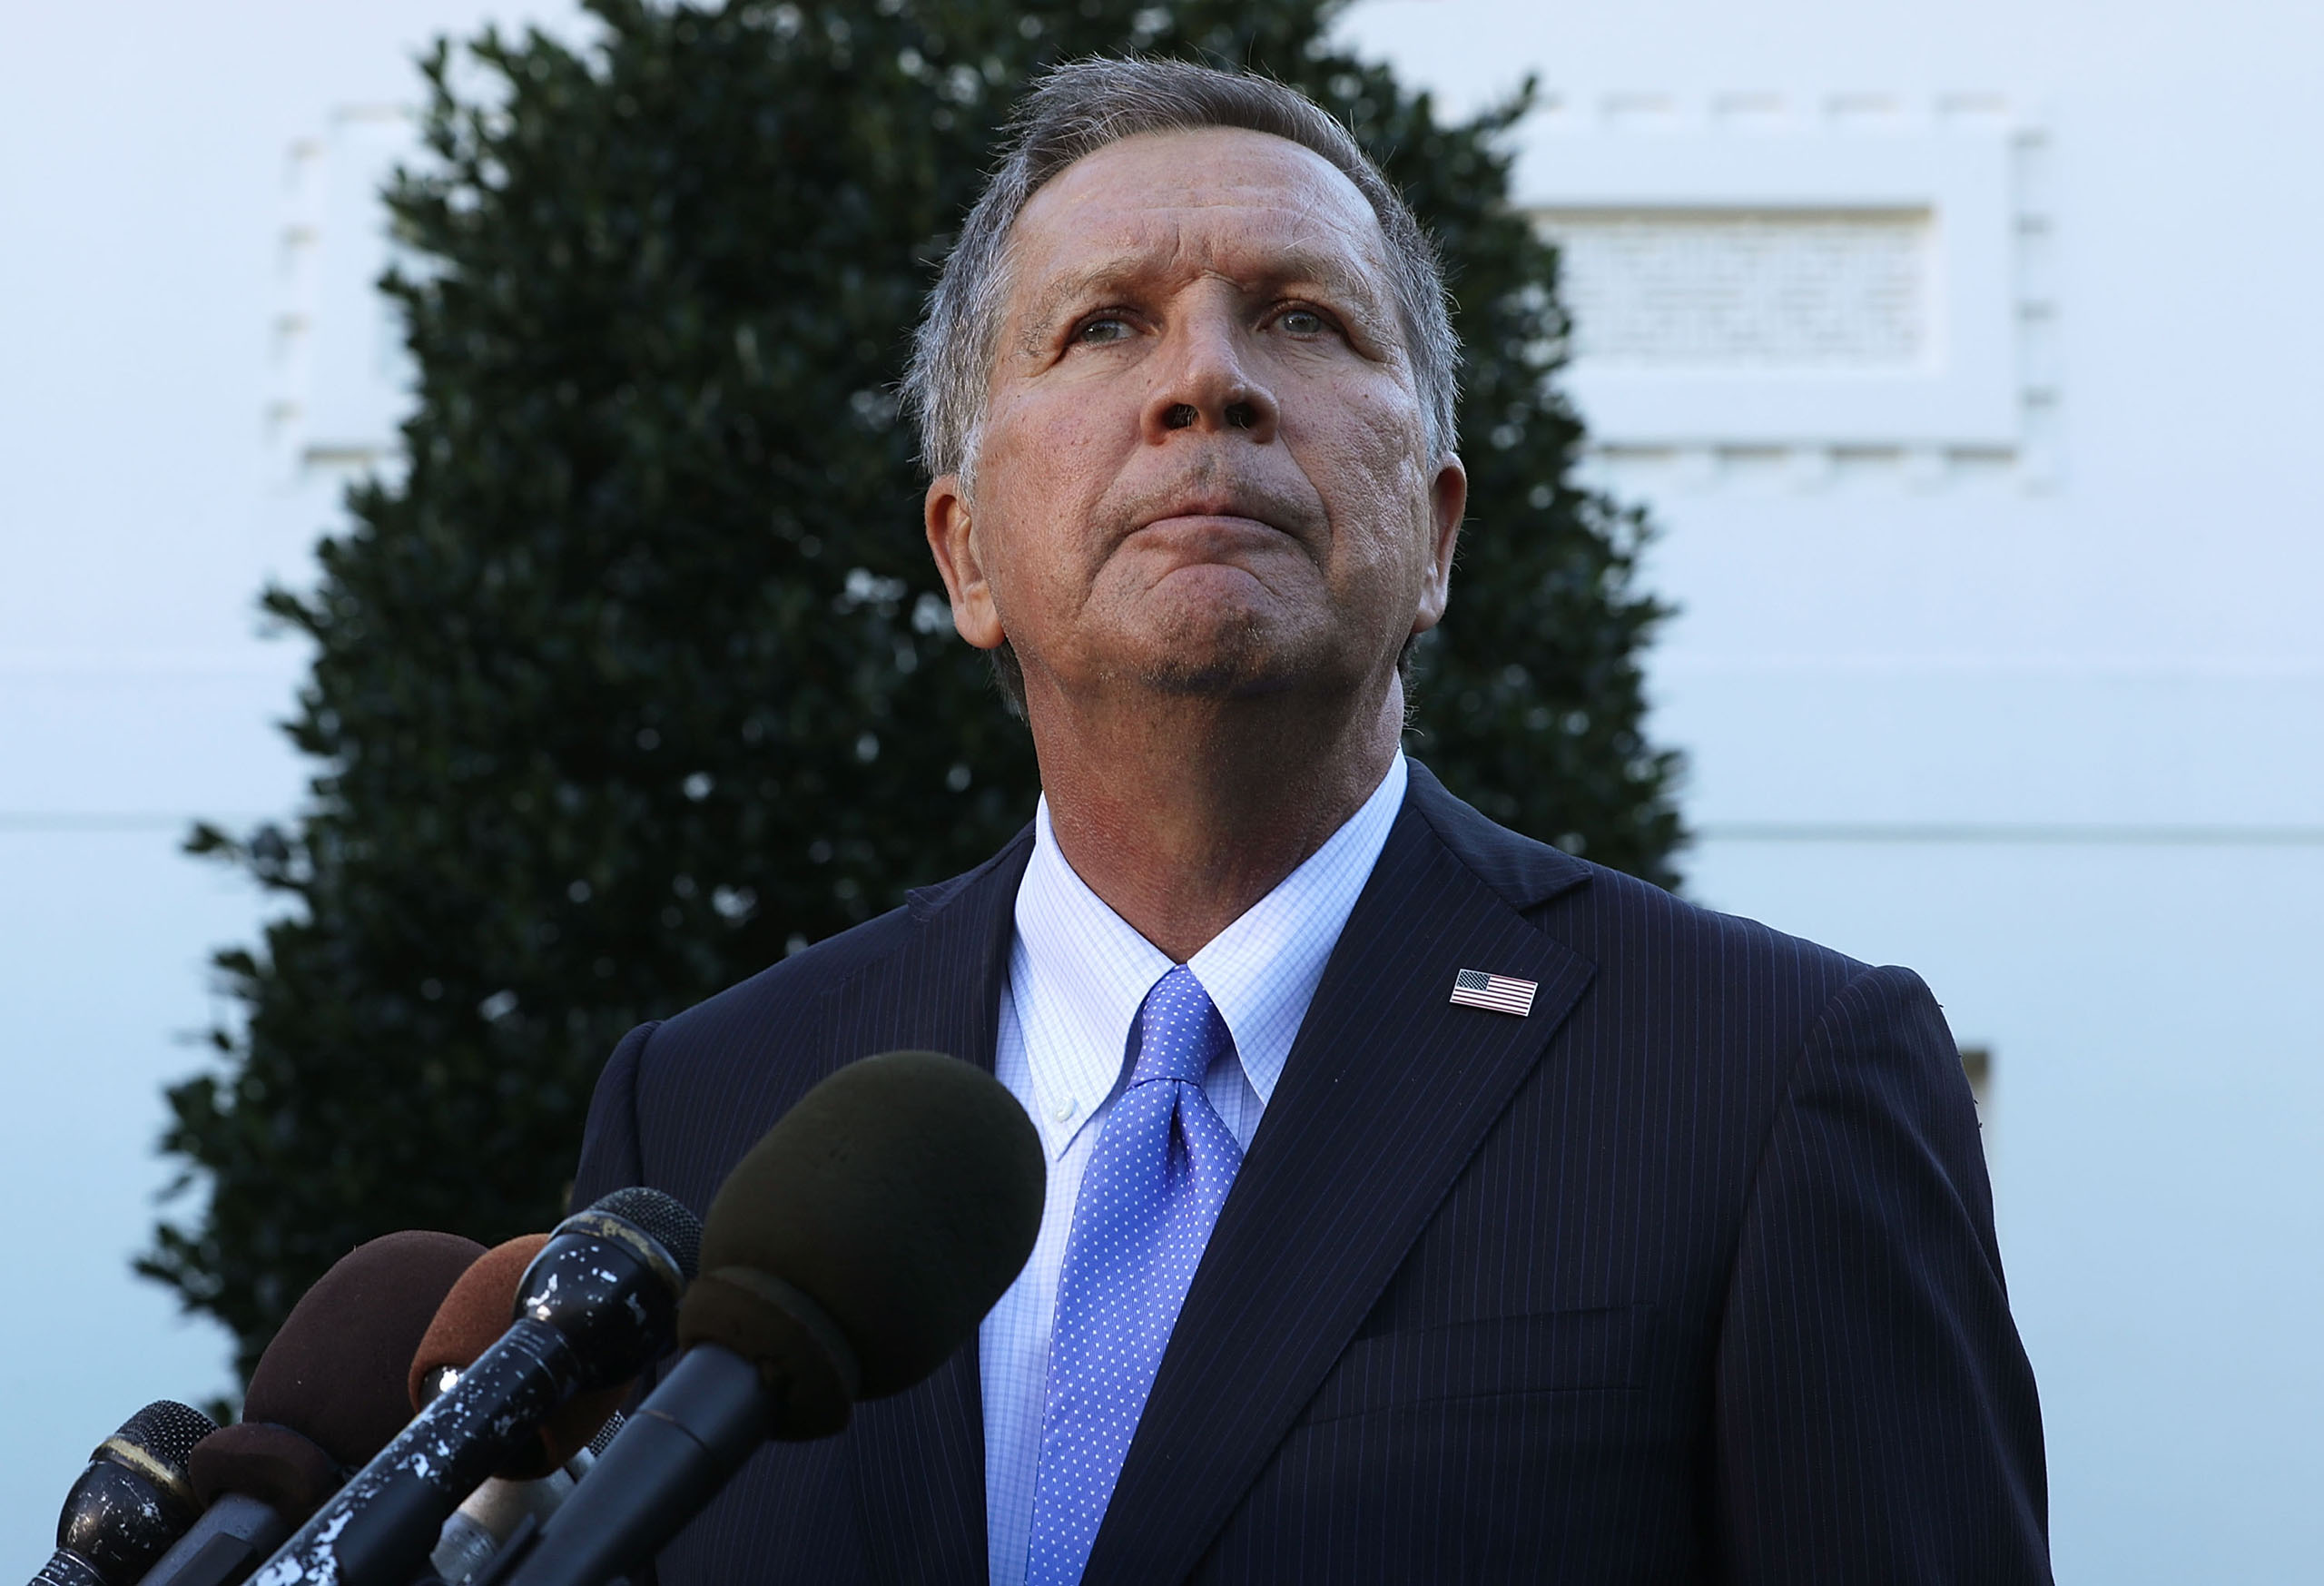 Ohio Governor John Kasich speaks to members of the media outside the West Wing on Nov. 10, 2016 at the White House in Washington, DC.